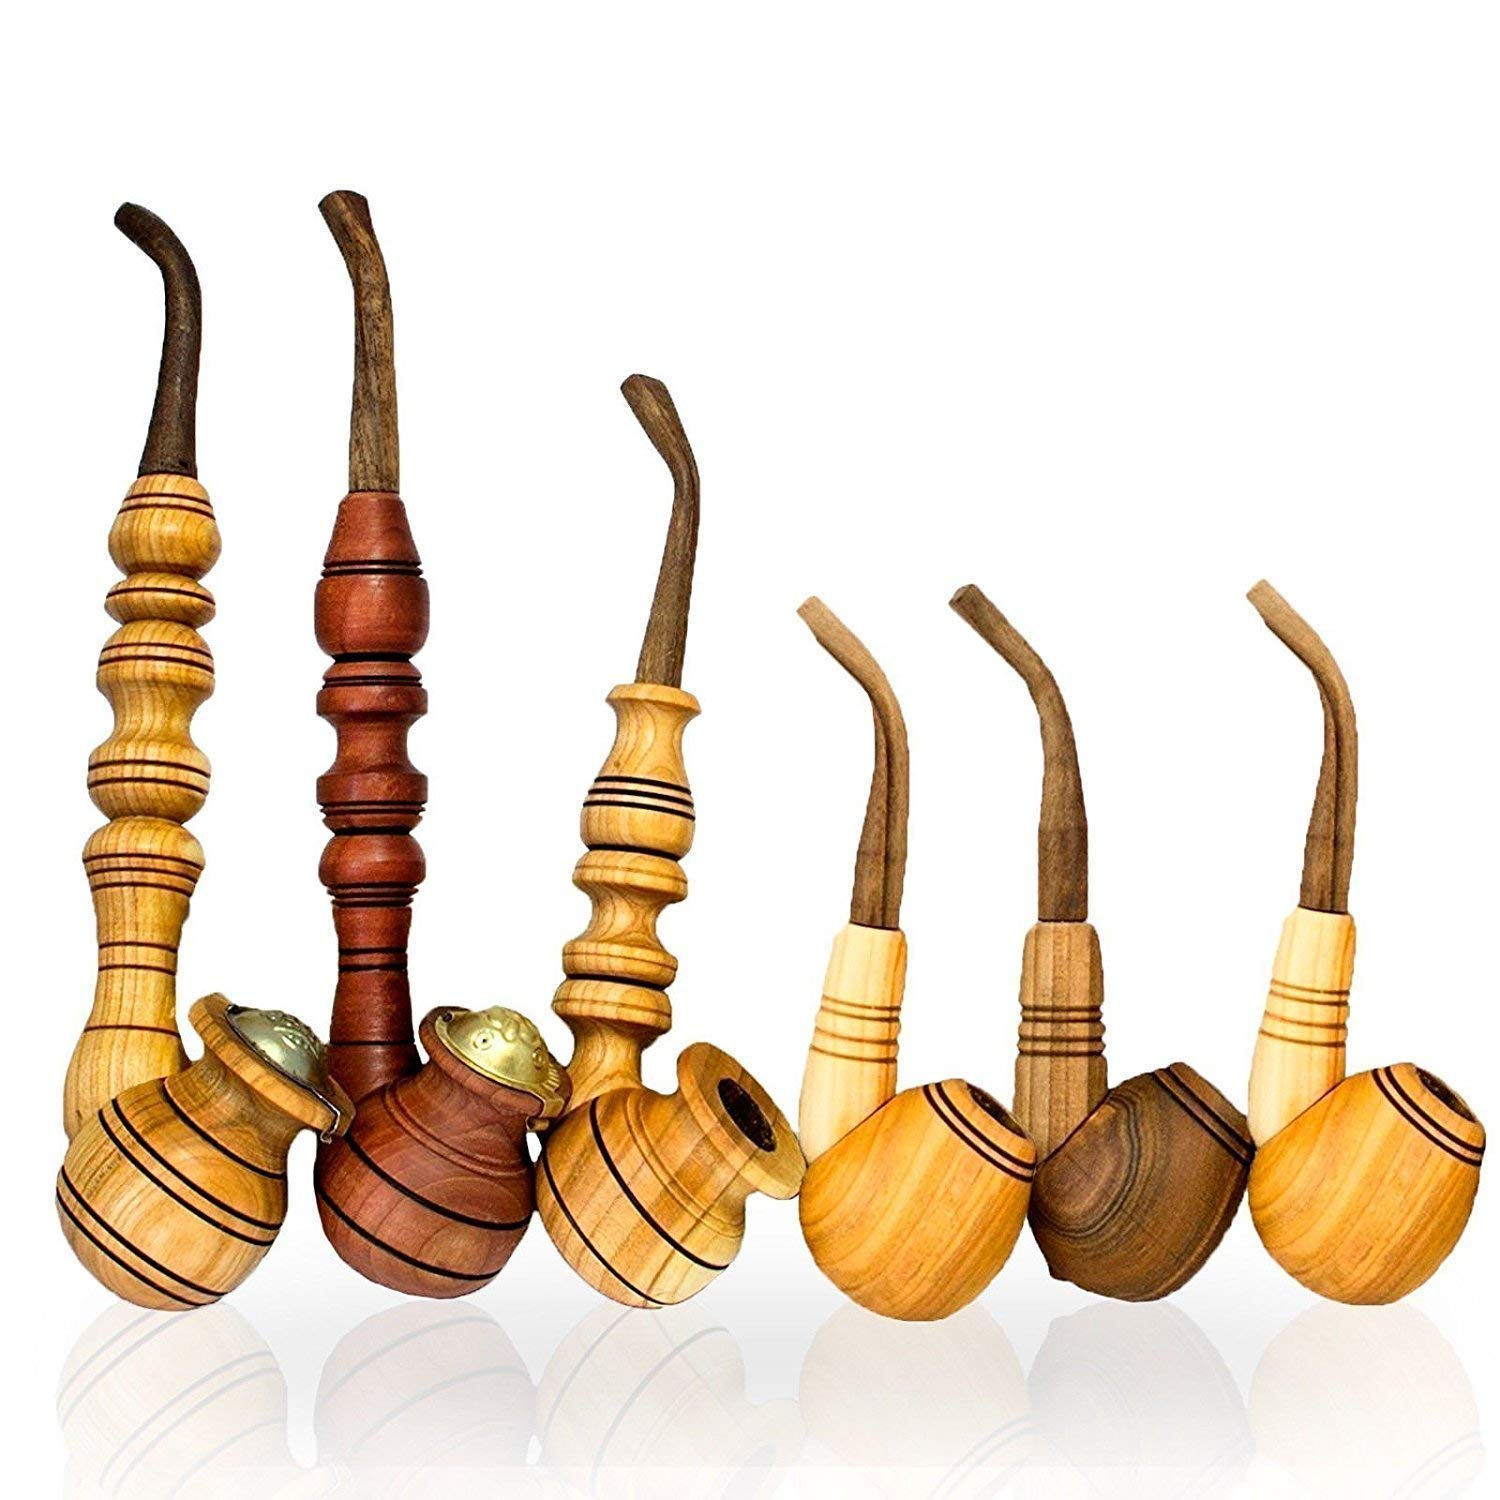 6 Pcs Handmade Tobacco Pipes - Wooden Carved Pipes for Smoking Tobacco, Best Gift for Men Husband Dad